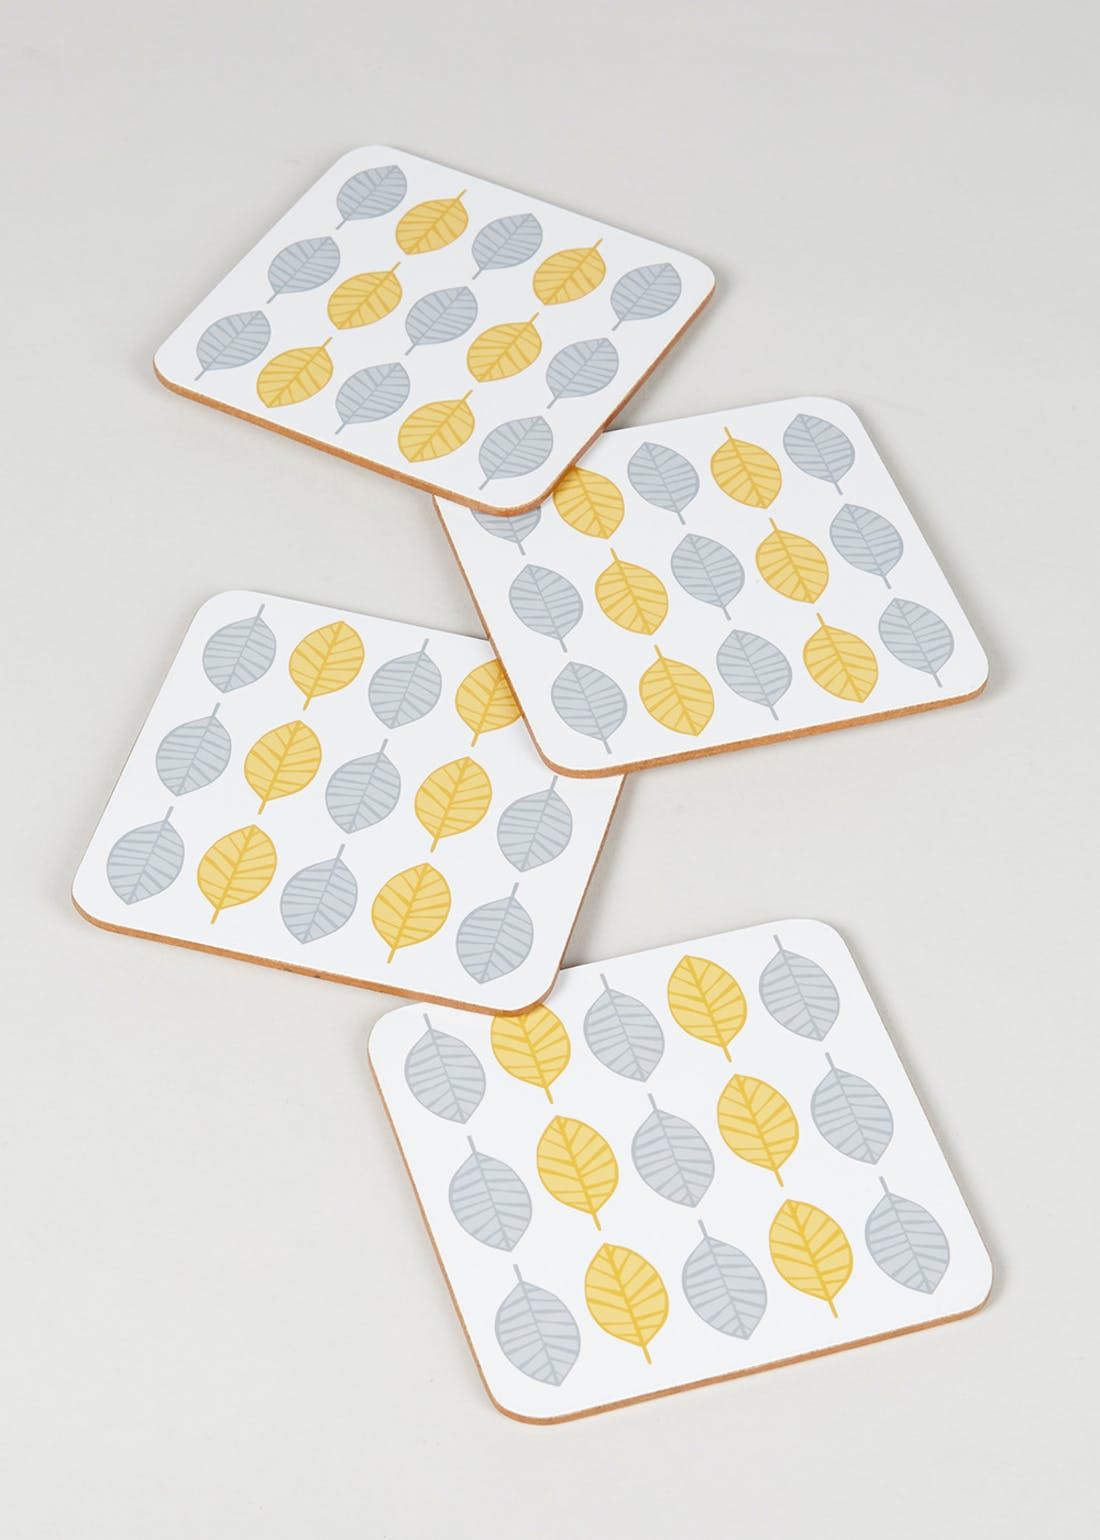 Scandi 4 Pack Coasters (10cm x 10cm)